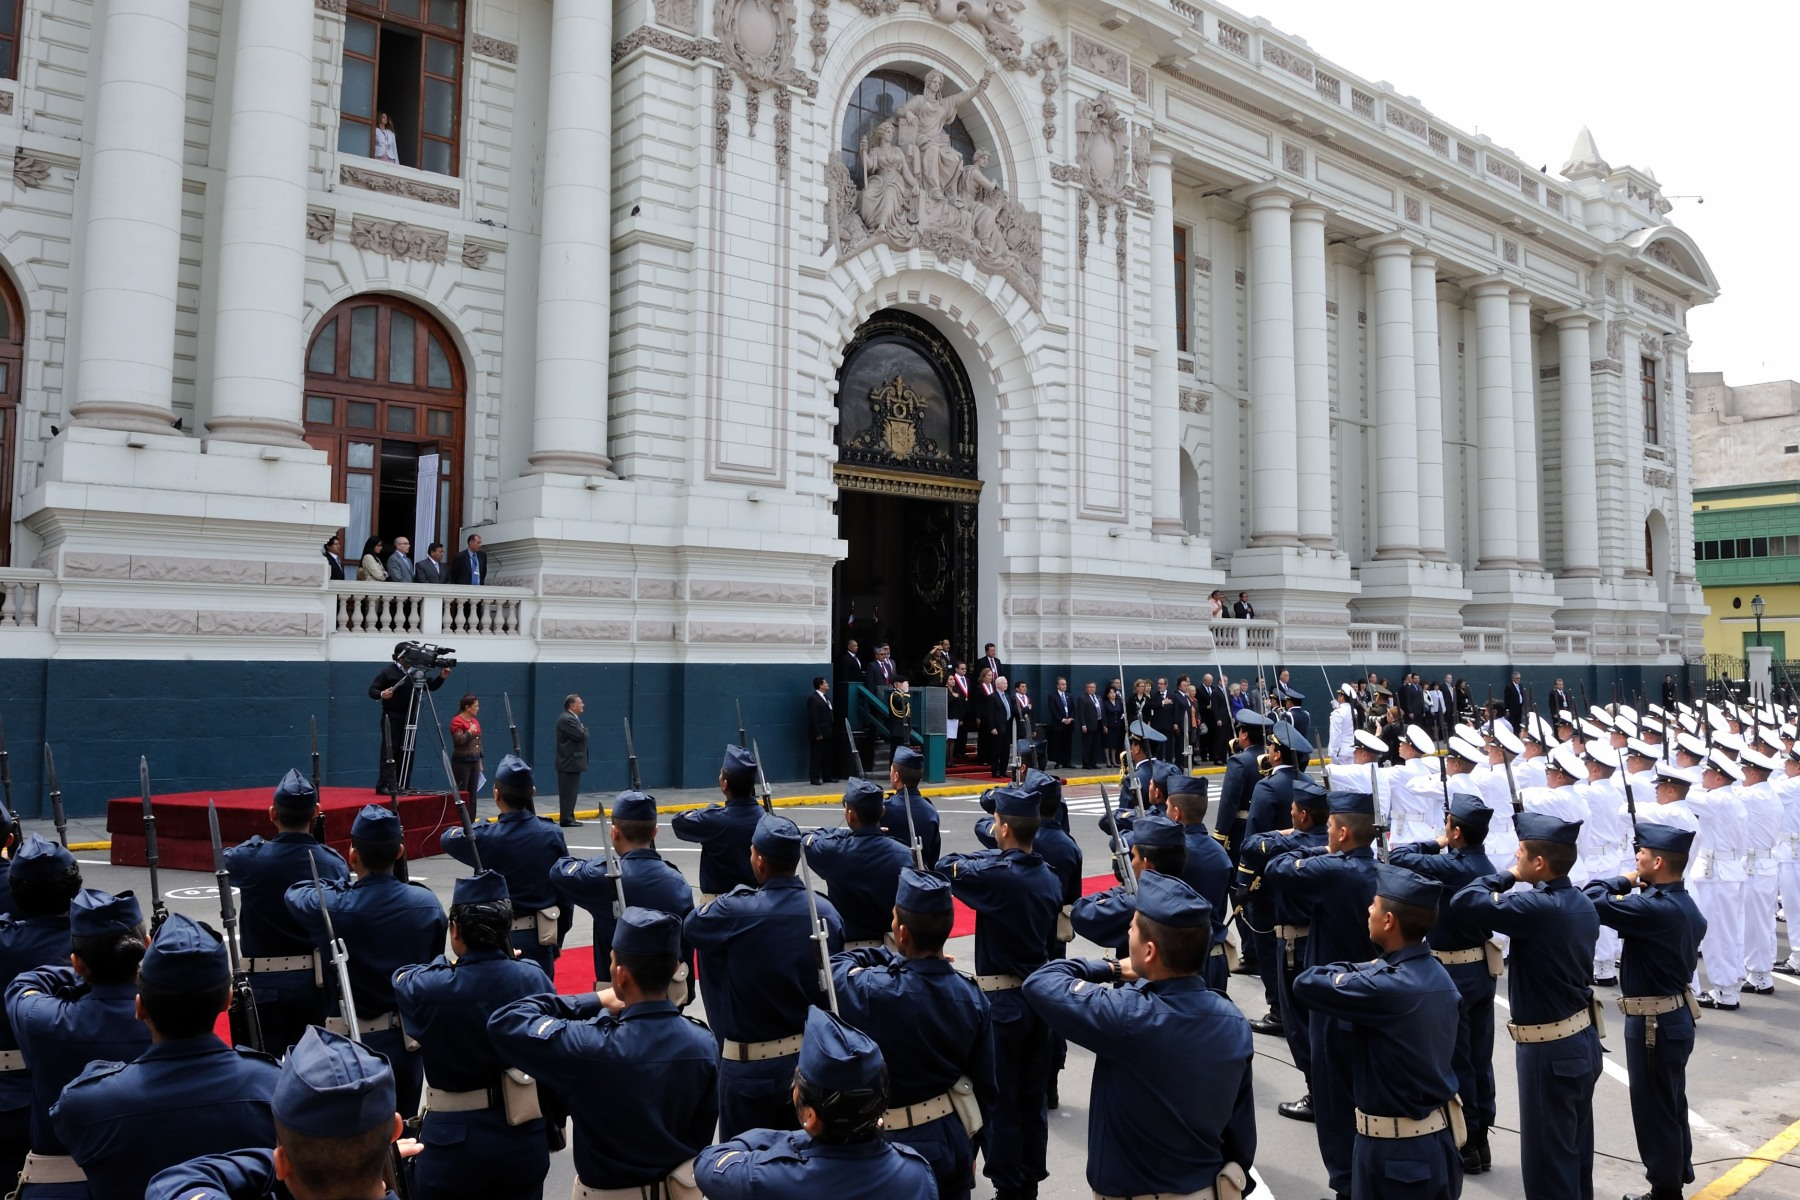 The meeting was held at the Congress of the Republic of Peru